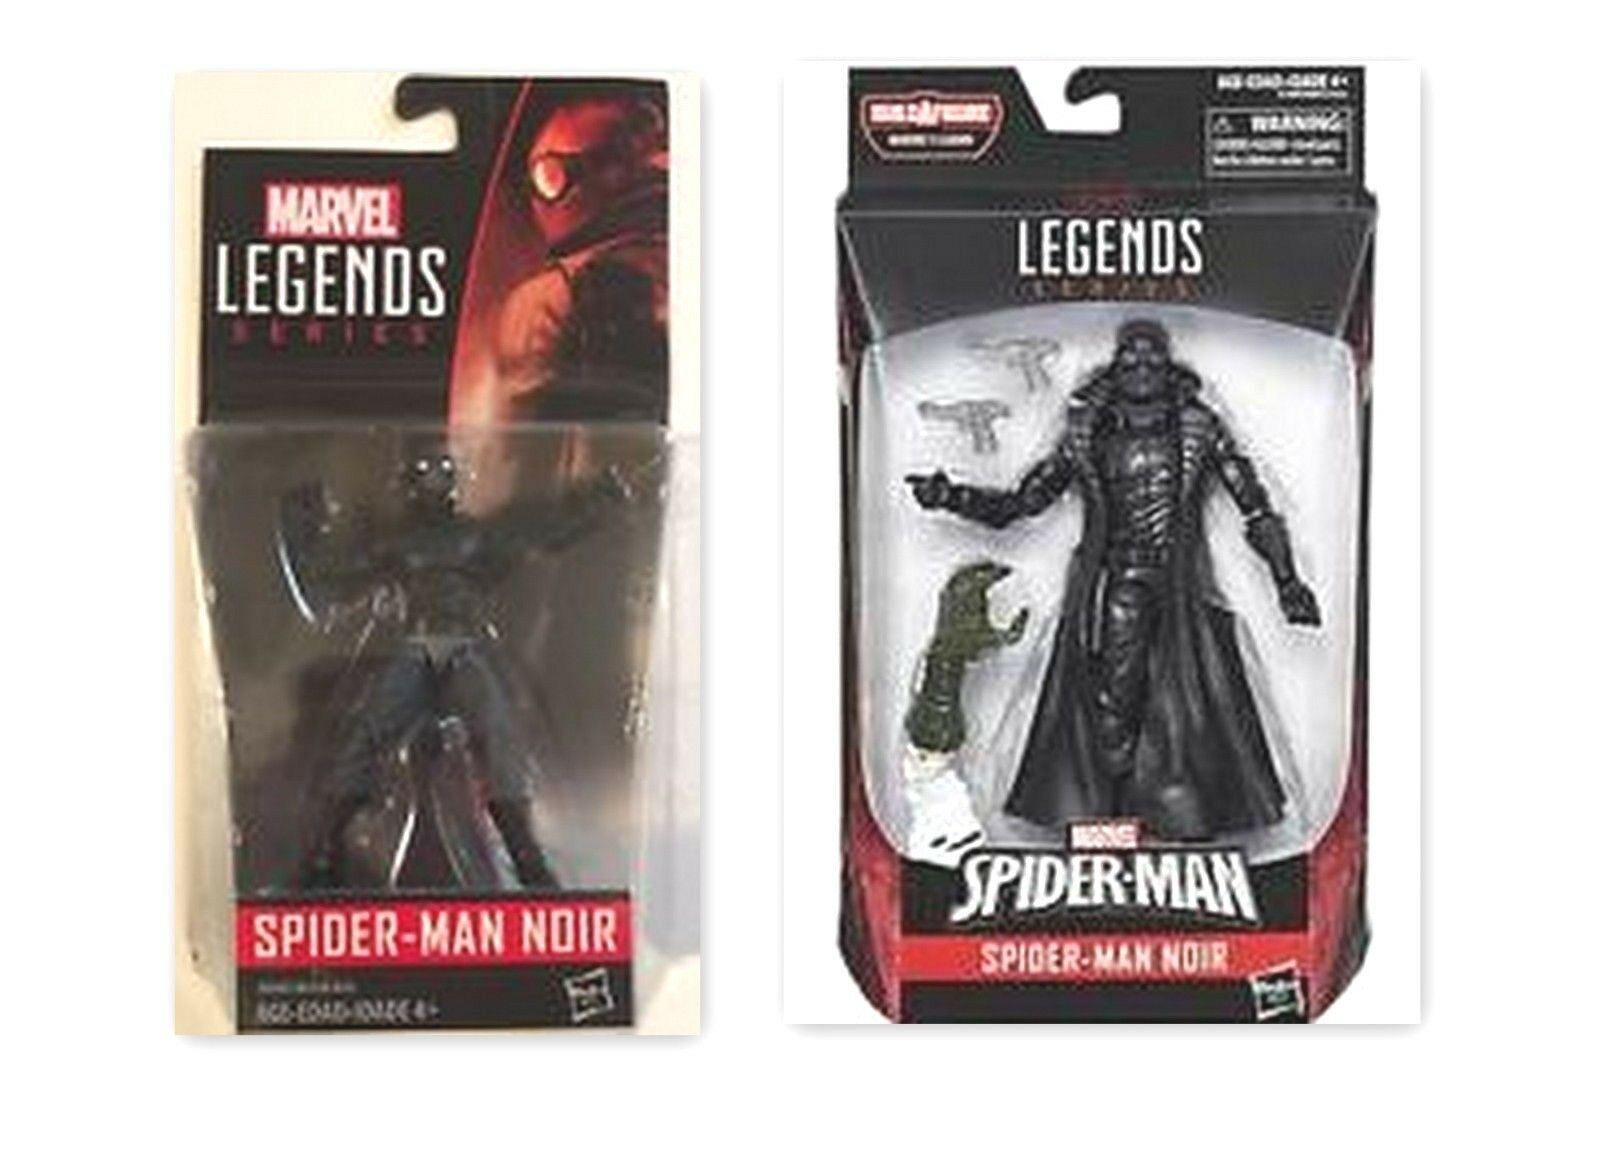 2018 MARVEL LEGENDS SPIDER-MAN SERIES SPIDER-MAN black 6 INCH FIGURE +3.75 FIGURE